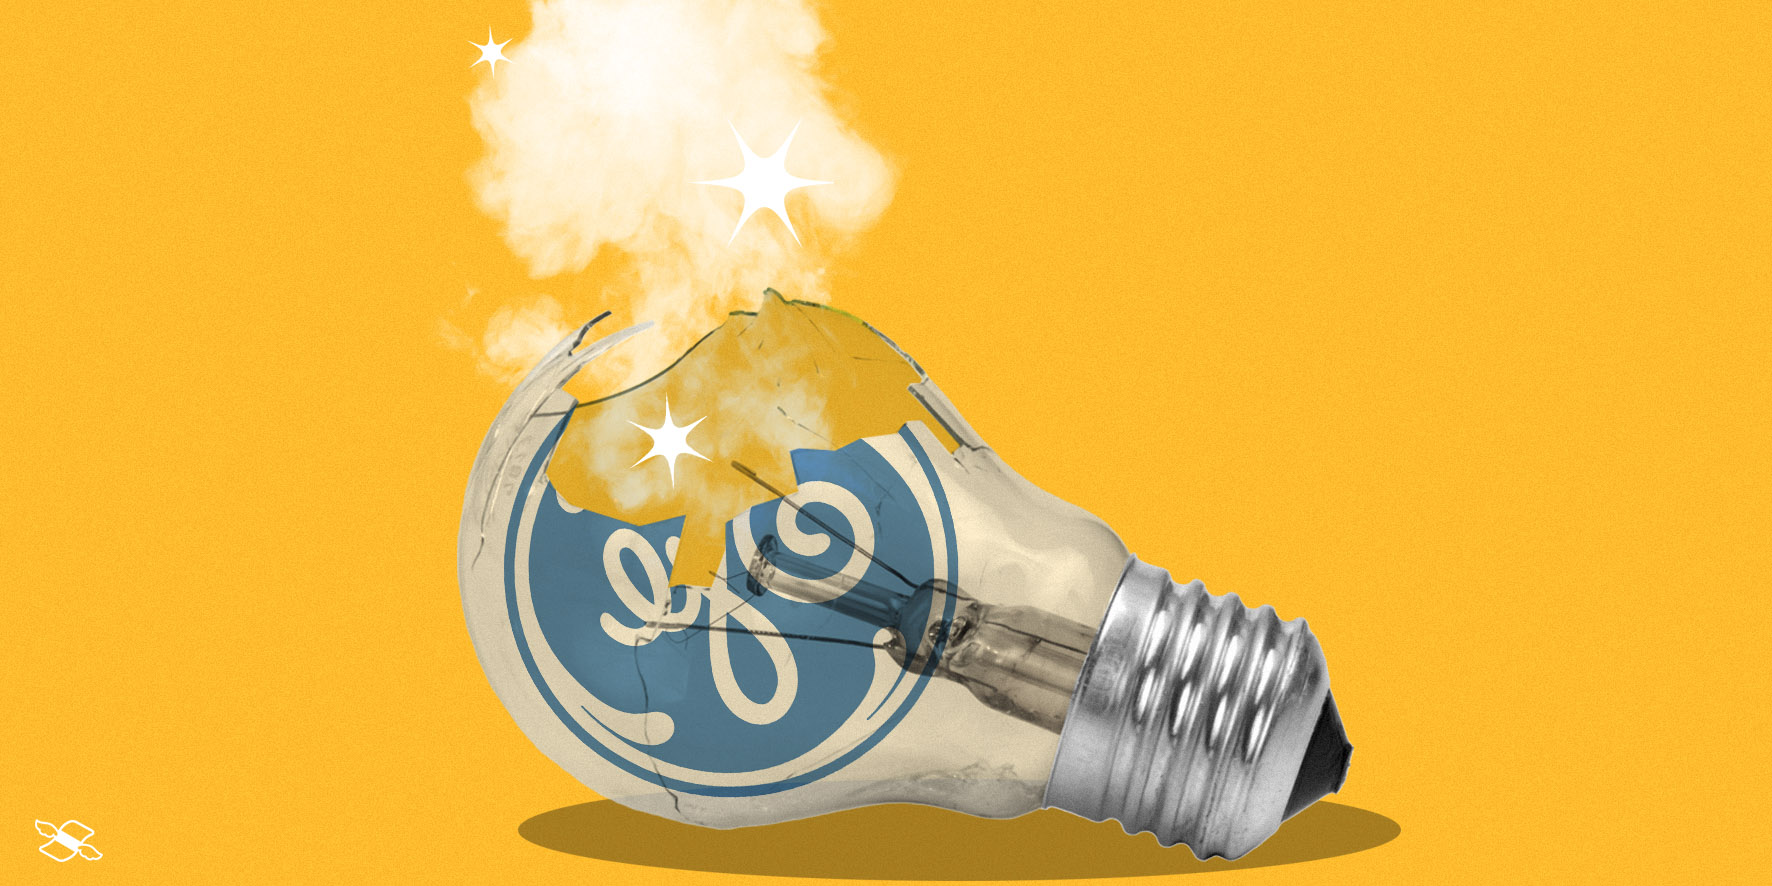 GE announced financial targets